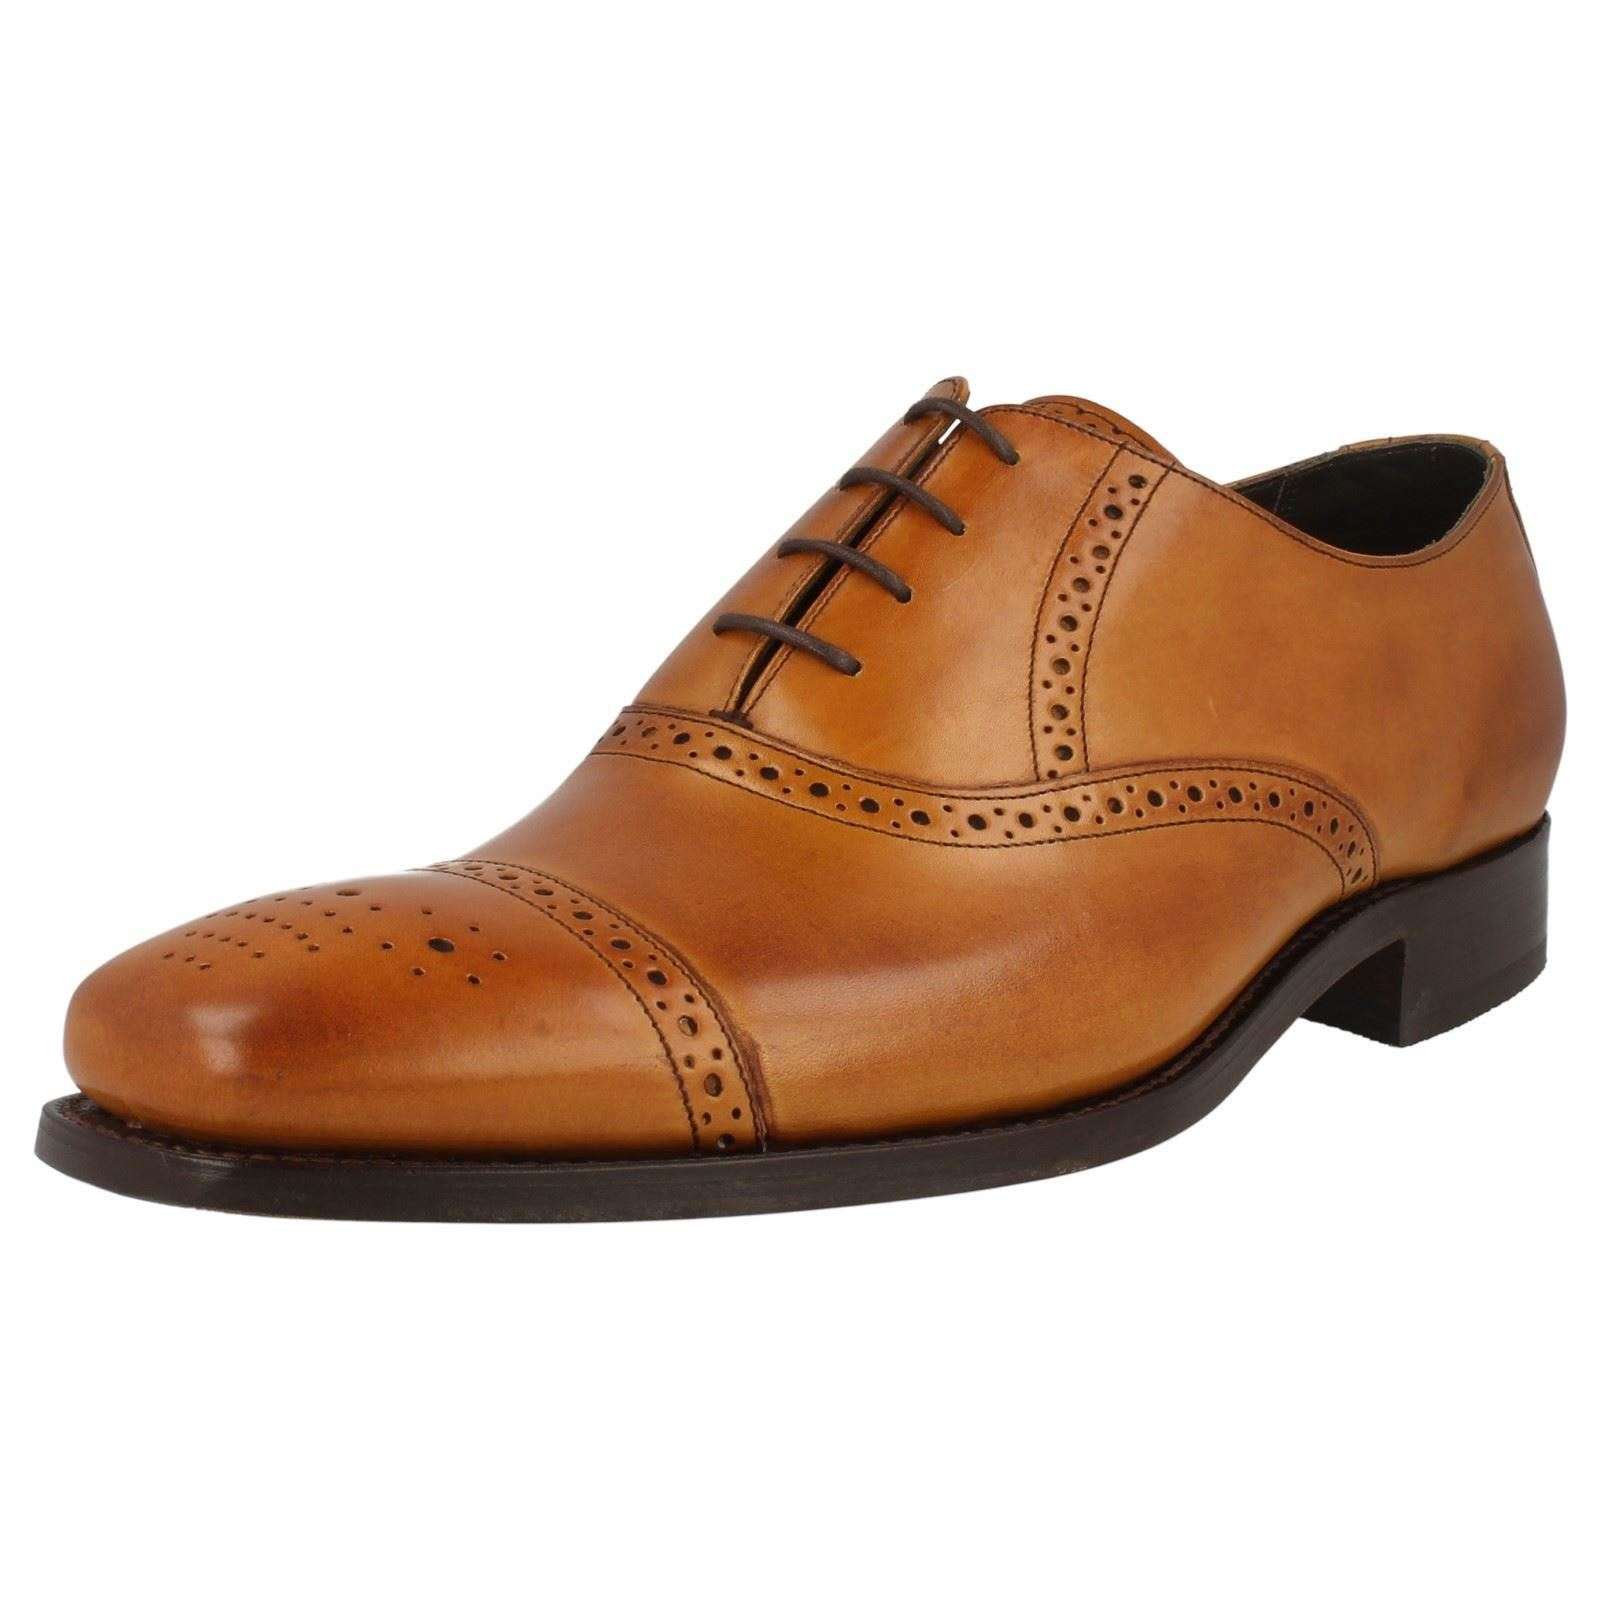 Uomo Schuhes Barker Lace Up Brogue Schuhes Uomo 'Flynn' a42197